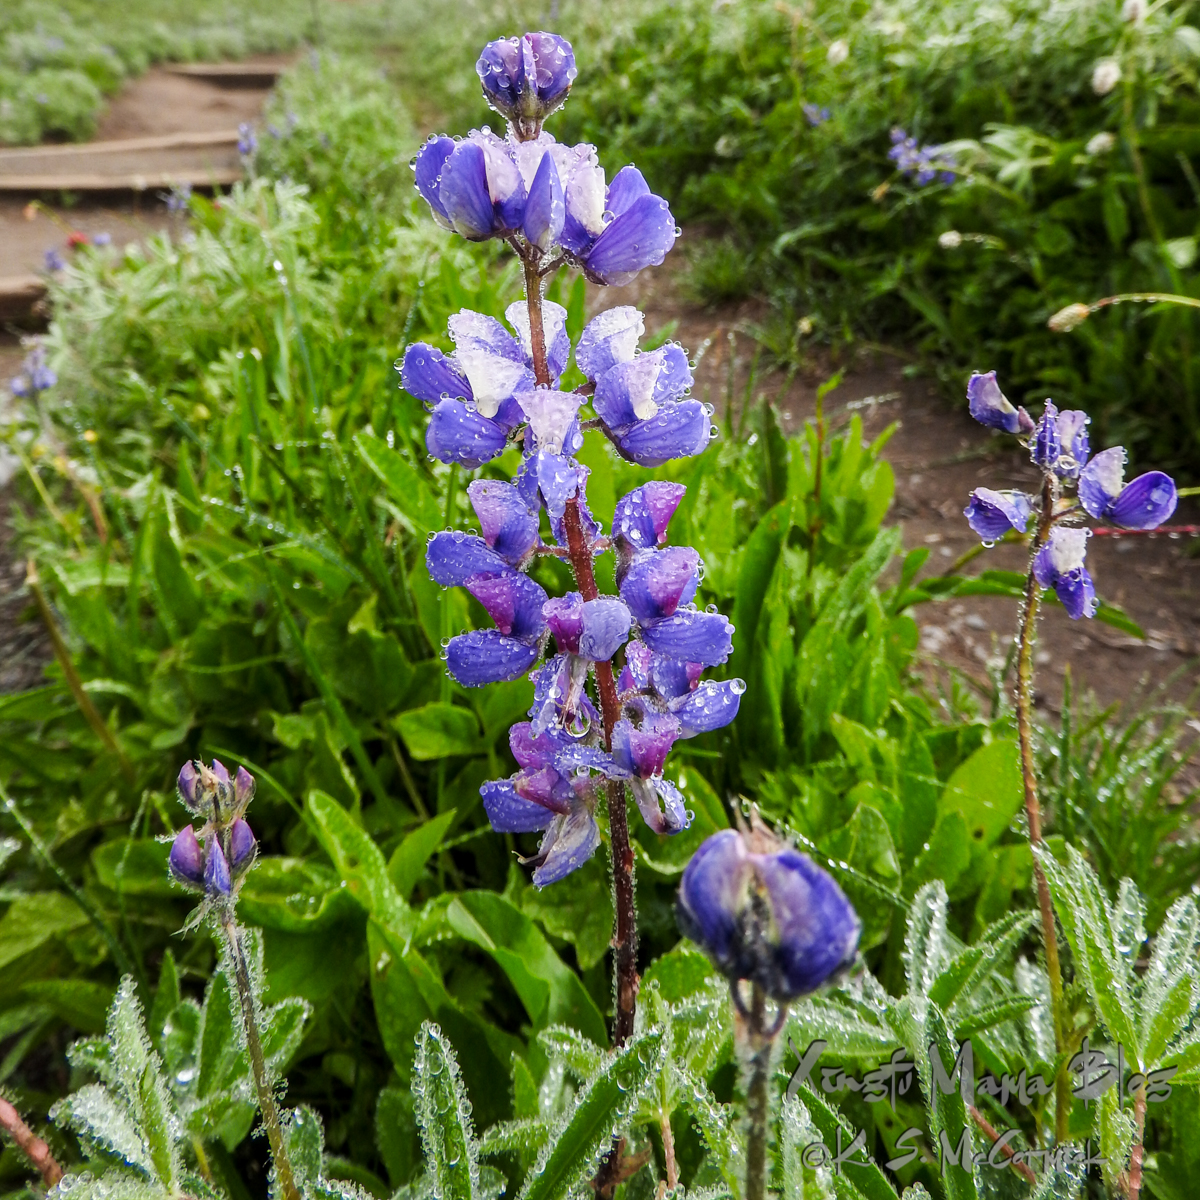 Alpine lupines sparkling with dew drops beside a trail at Mount Rainier National Park.